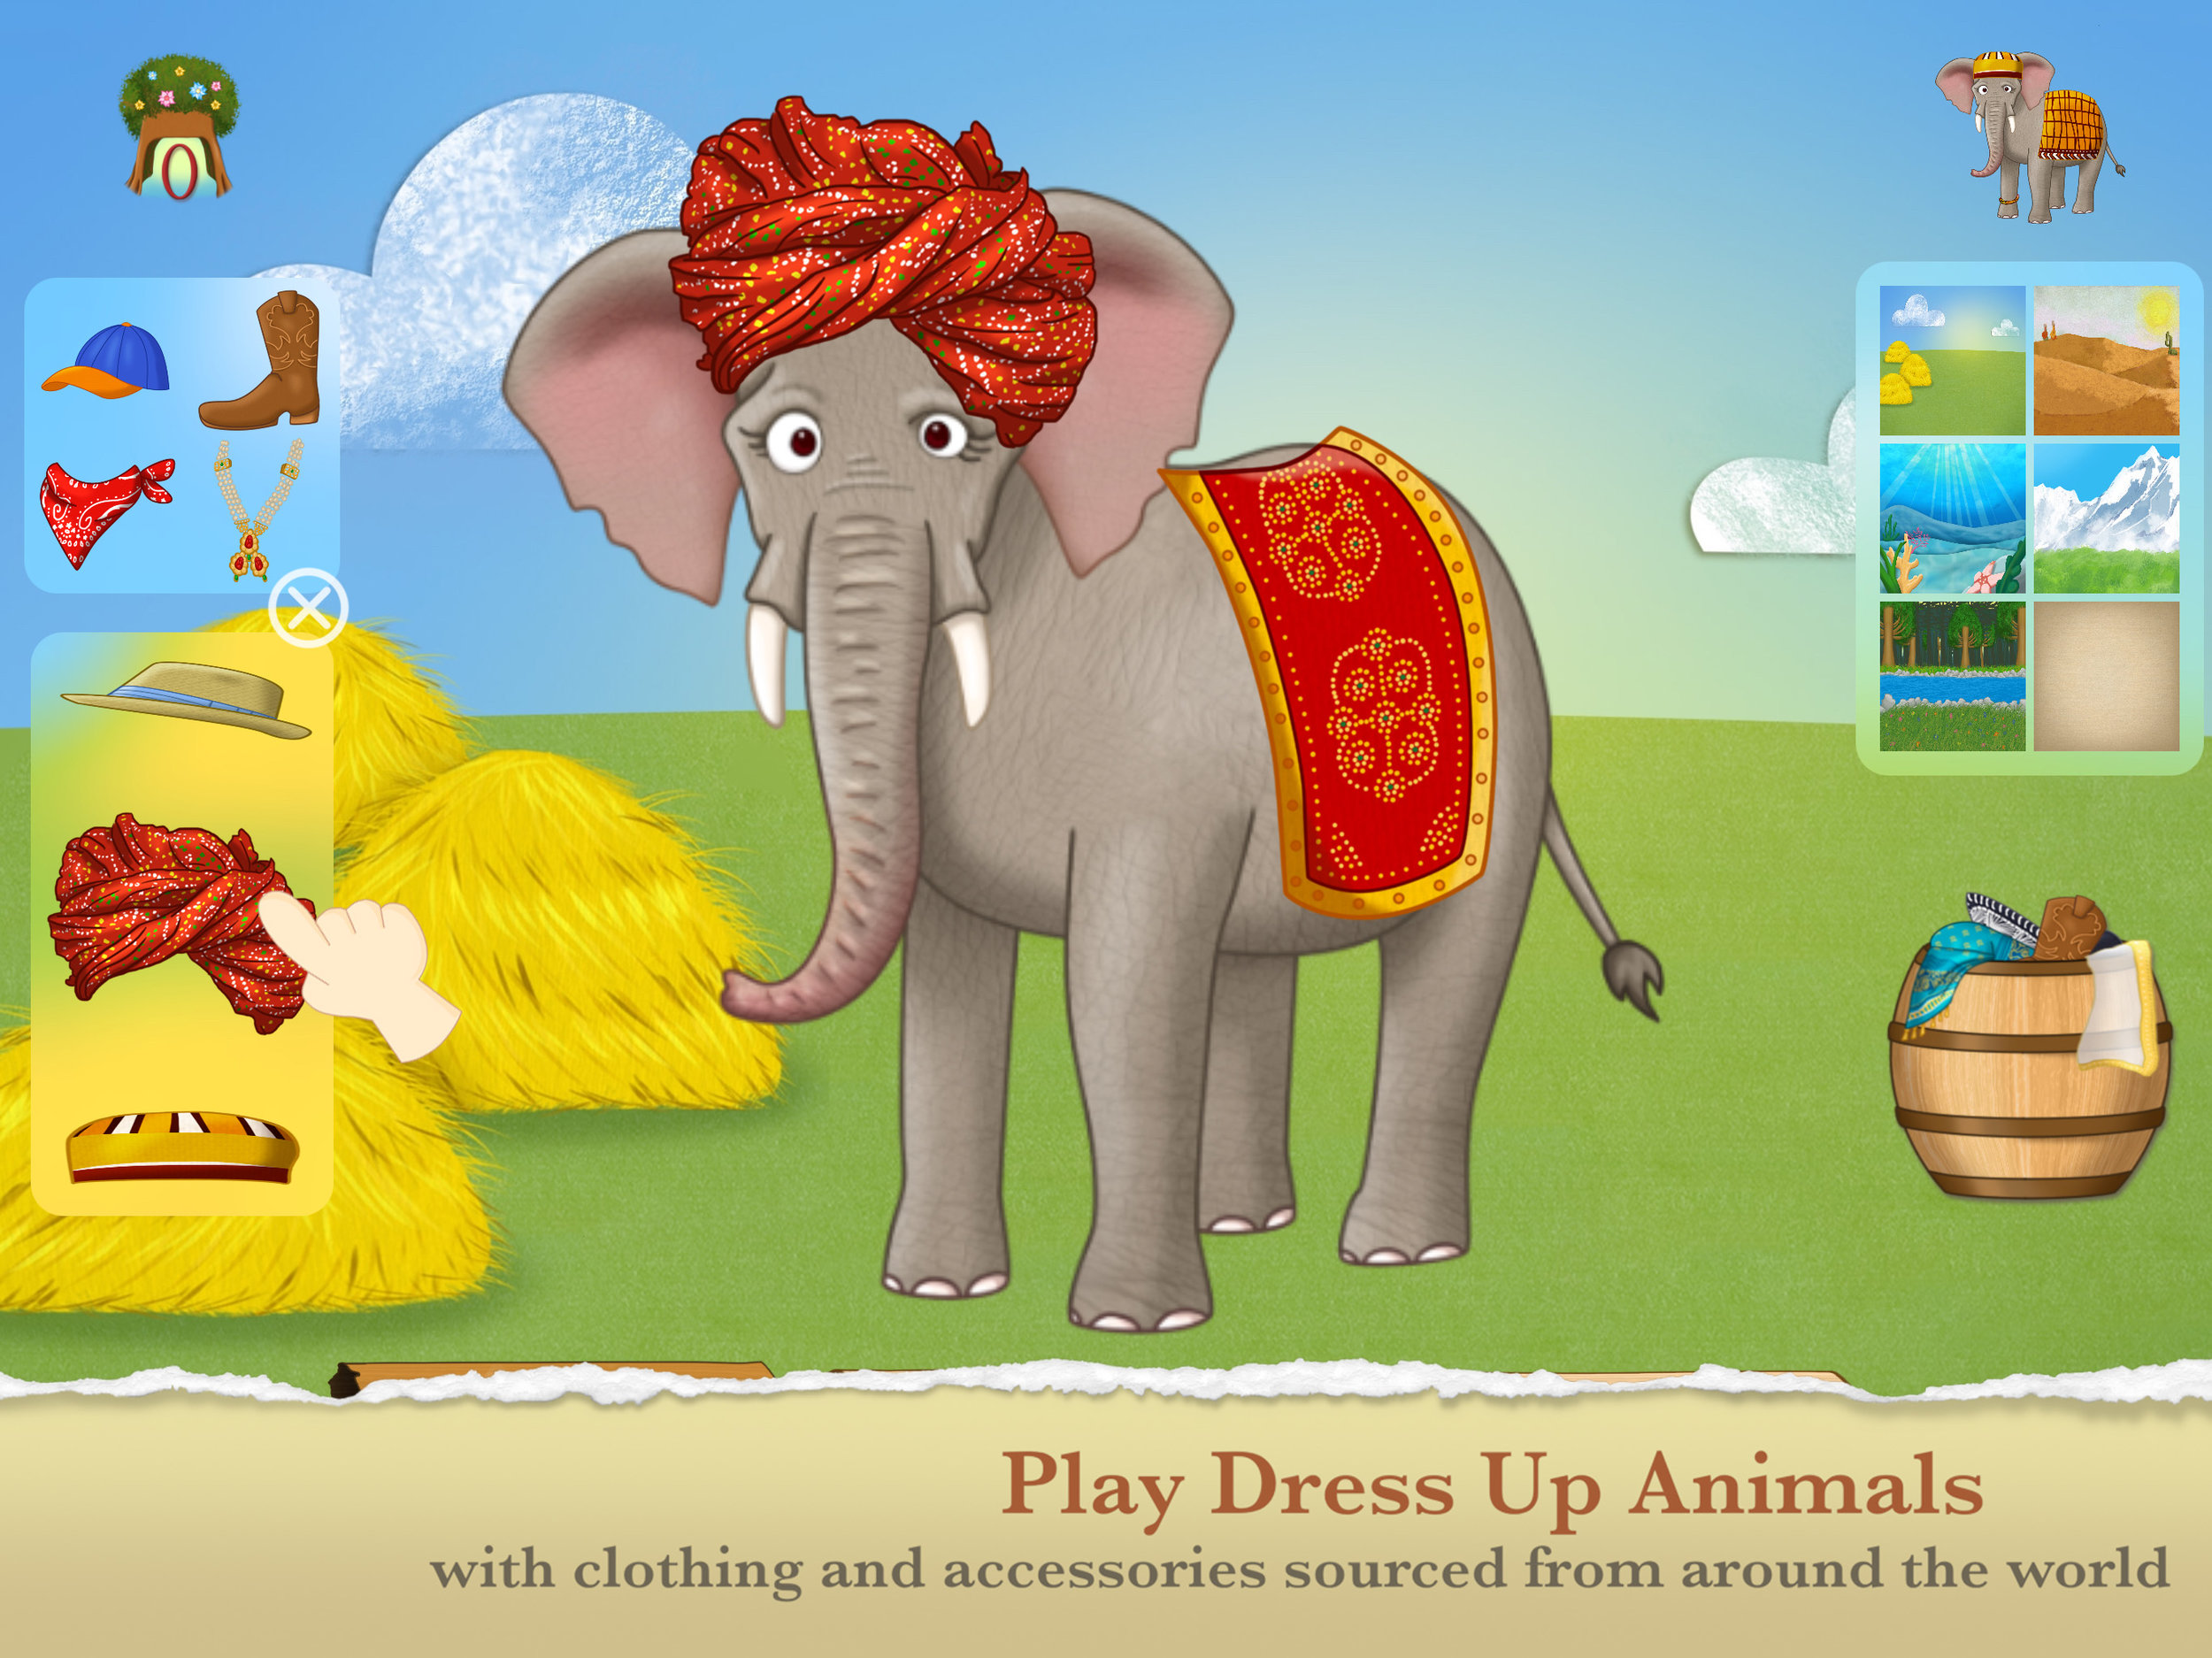 Play Dress Up Animals.jpg